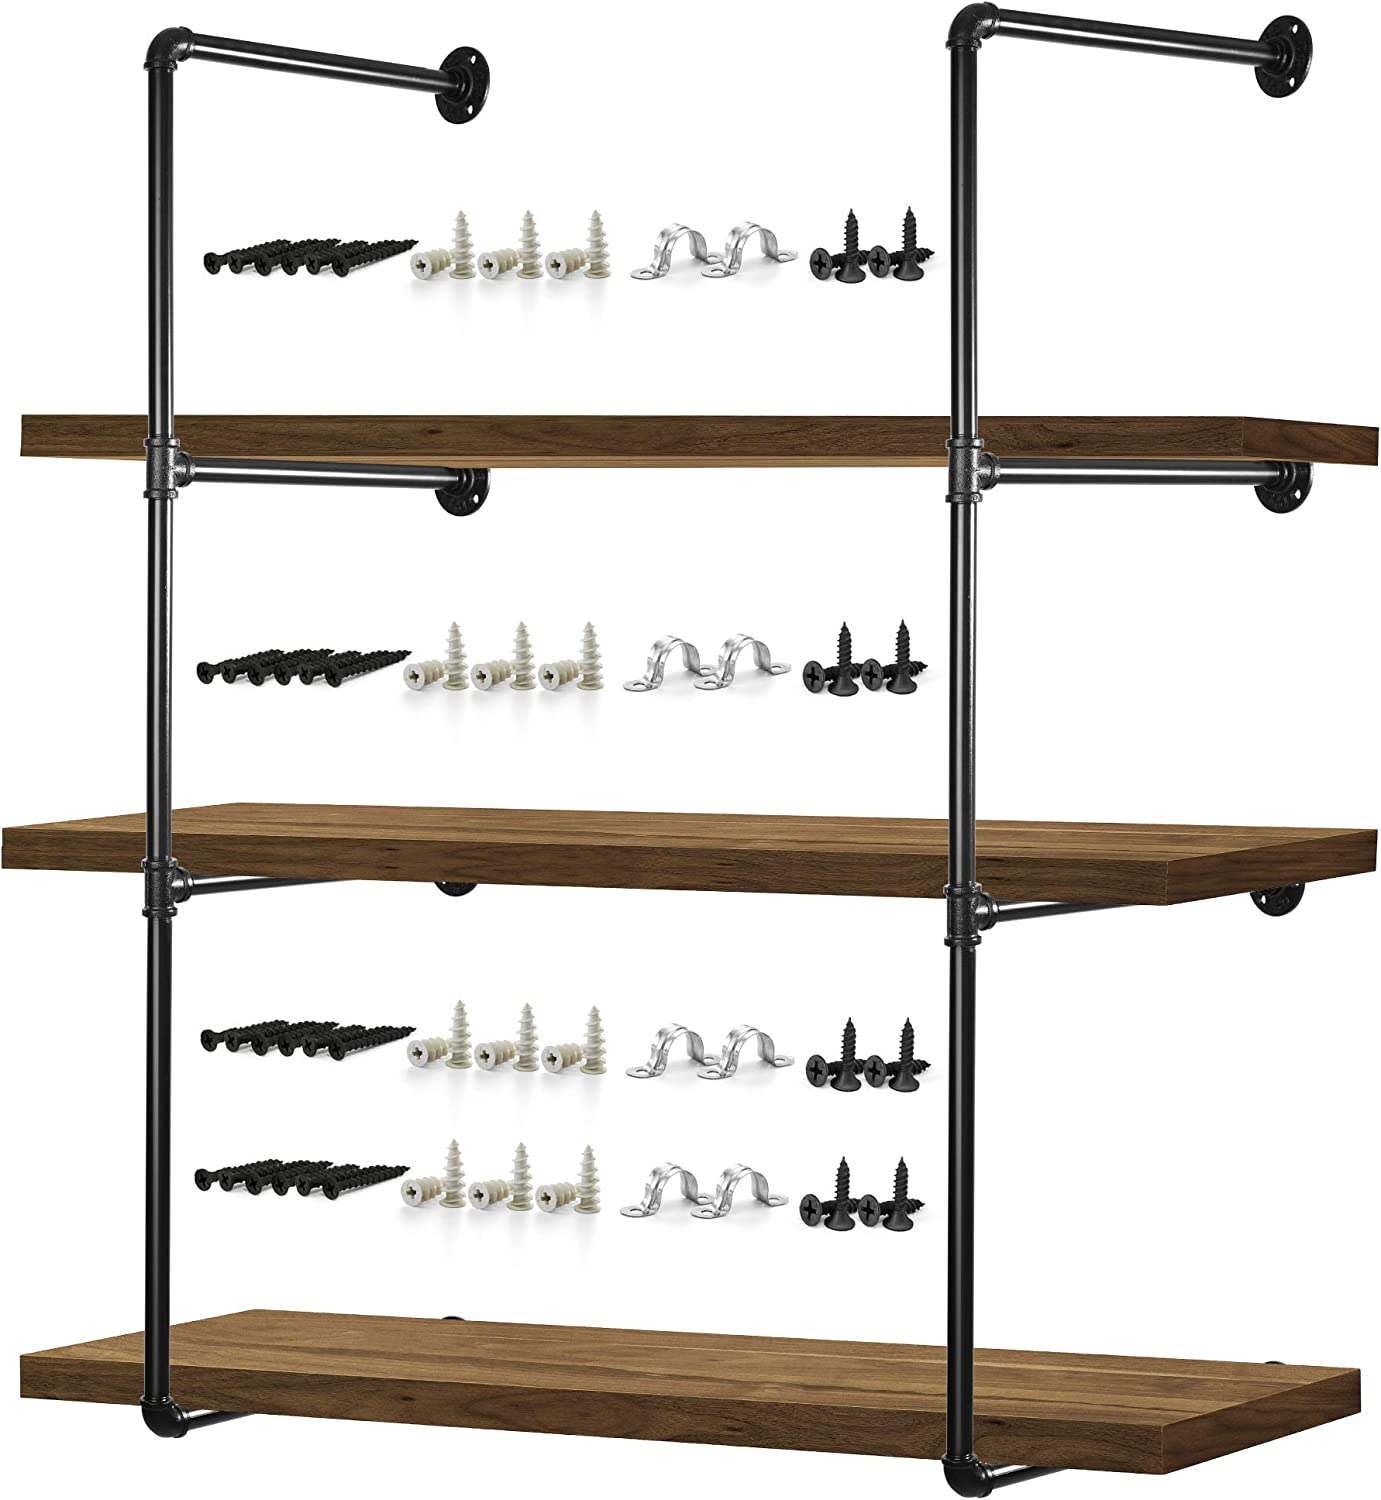 """Pipe Shelves – 2 PCS (43"""" Tall) Industrial Pipe Shelving – Pipe Shelf Bracket for Wood Floating Shelf Vintage Look - Rustic Pipe Decor with All Accessories Needed (Shelf Not Included) (4 Tier 43"""")"""